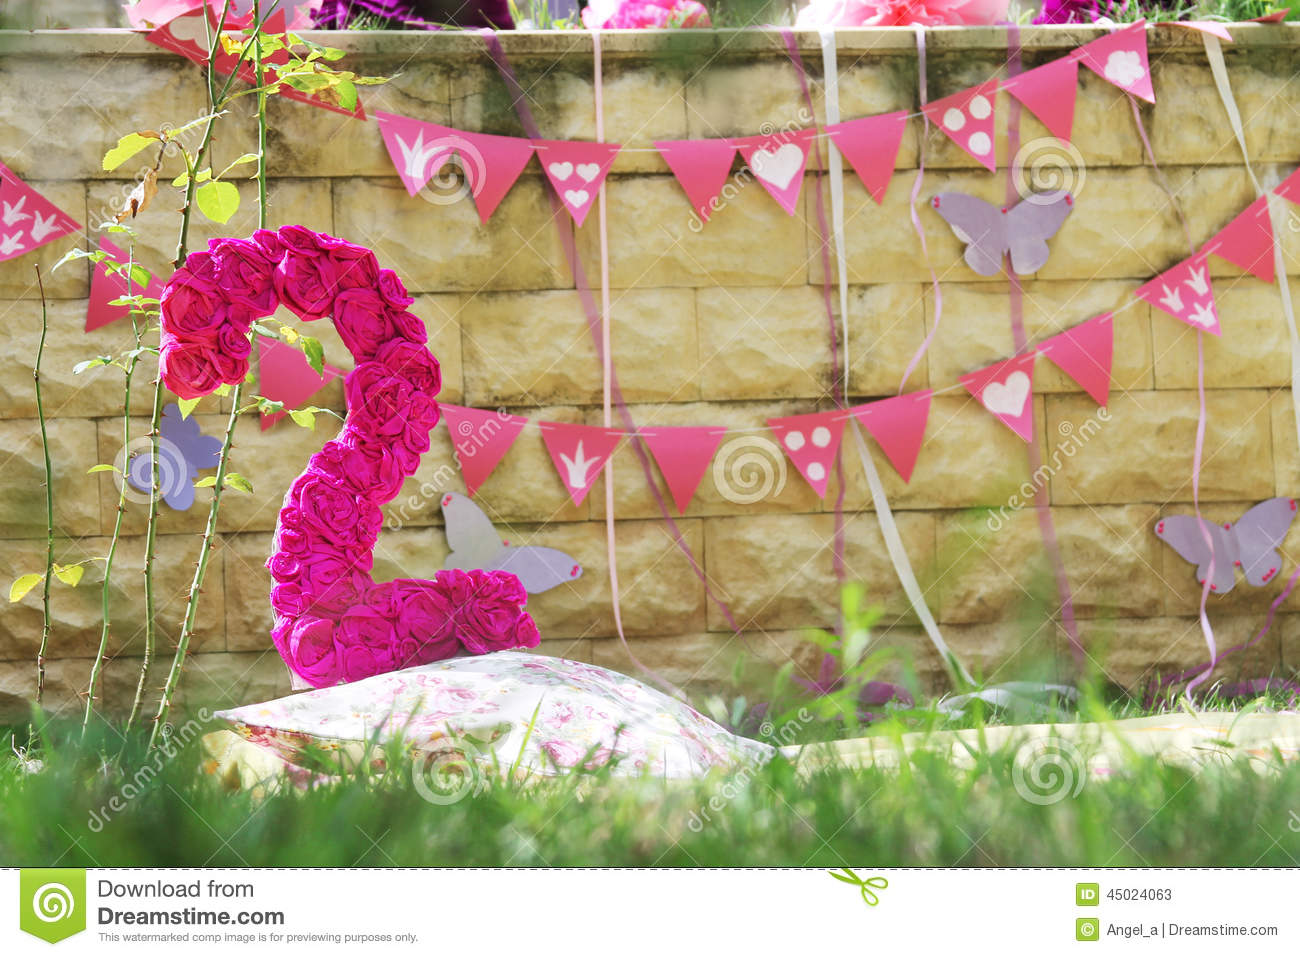 Decoration for two years anniversary party